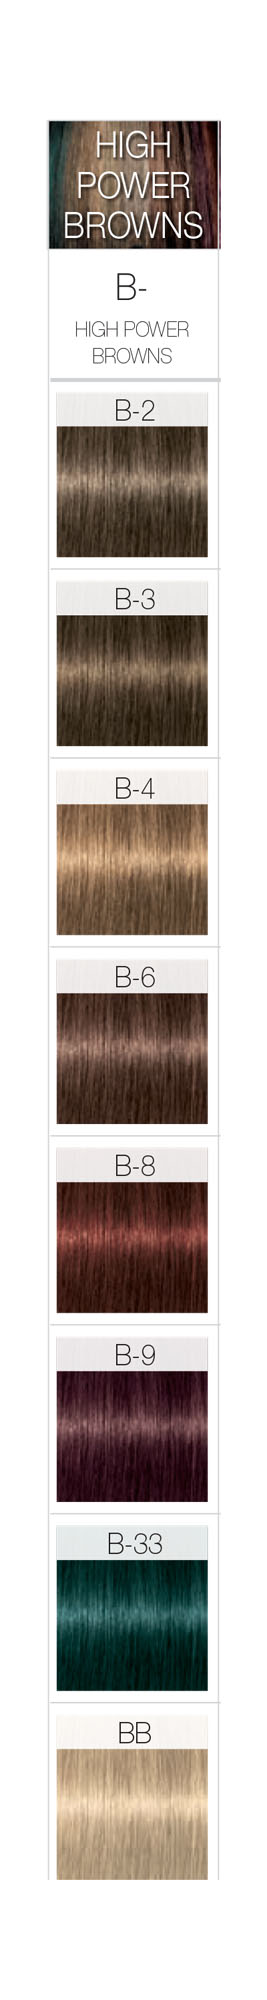 Schwarzkopf Professional Igora Royal High Power Browns Color Chart Schwarzkopf Hair Color Schwarzkopf Color Chart